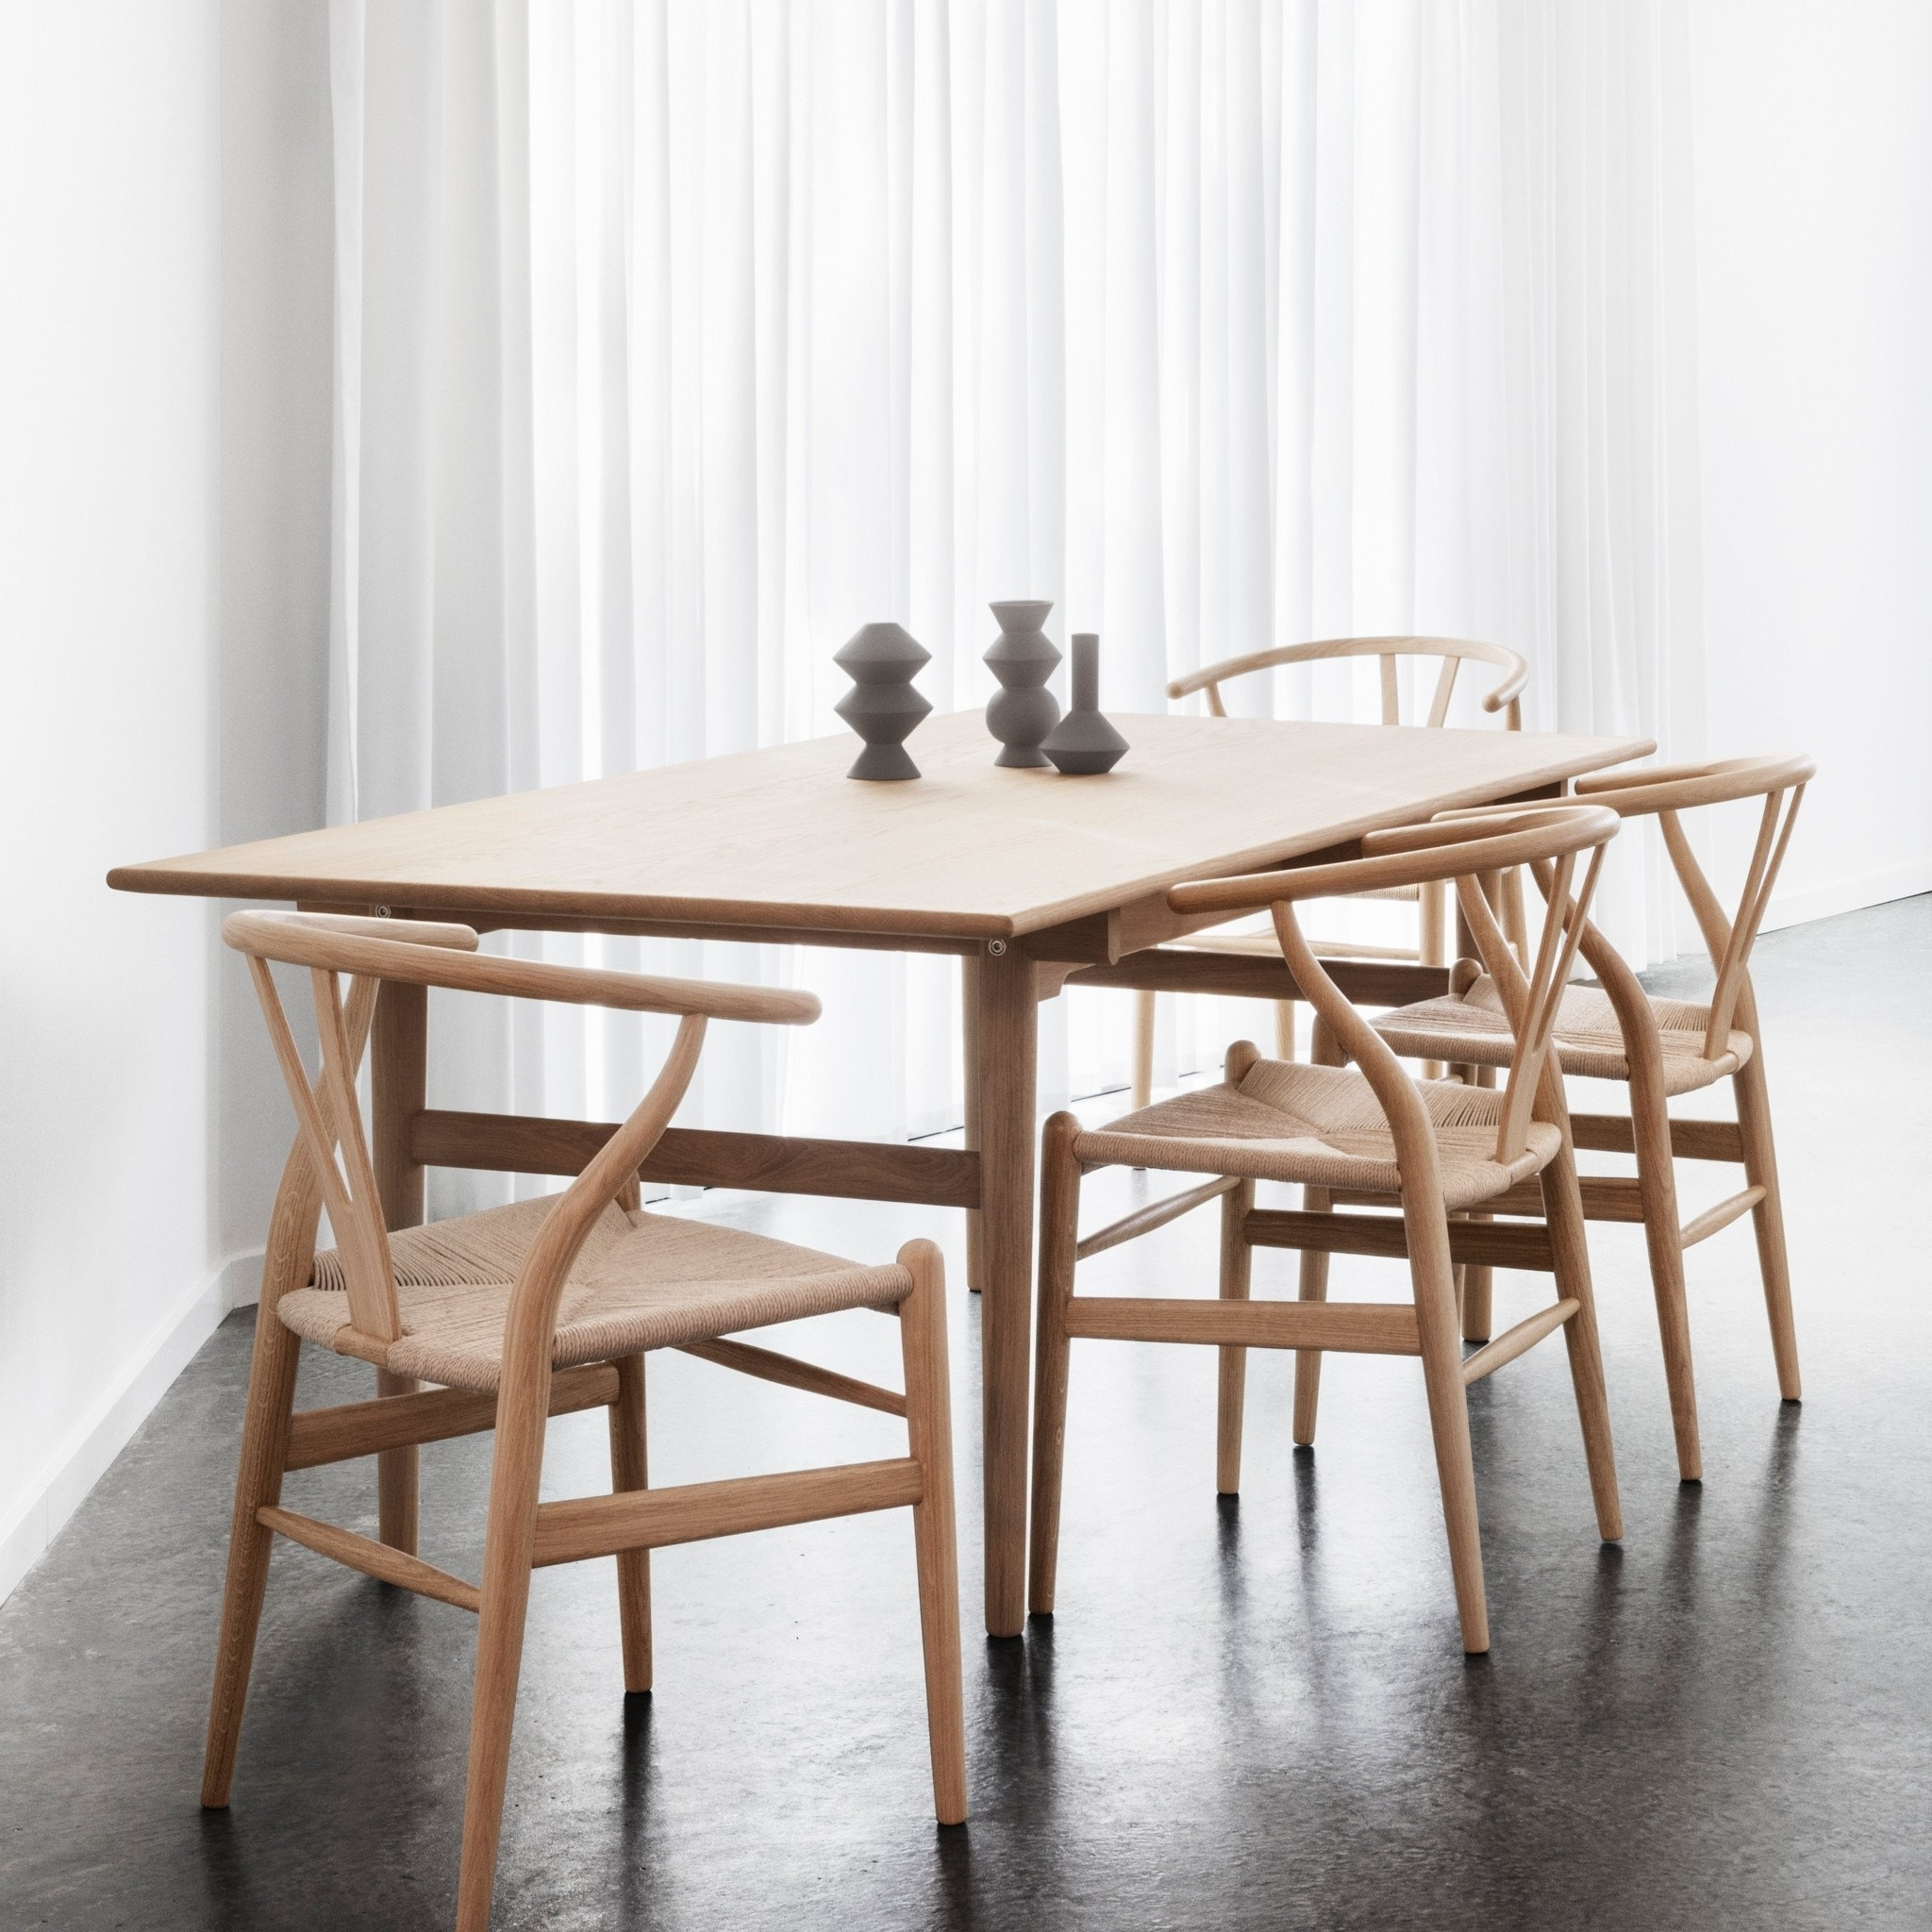 Widely Used Ch327 Dining Tablecarl Hansen & Søn — Haus® For Dining Tables London (View 25 of 25)